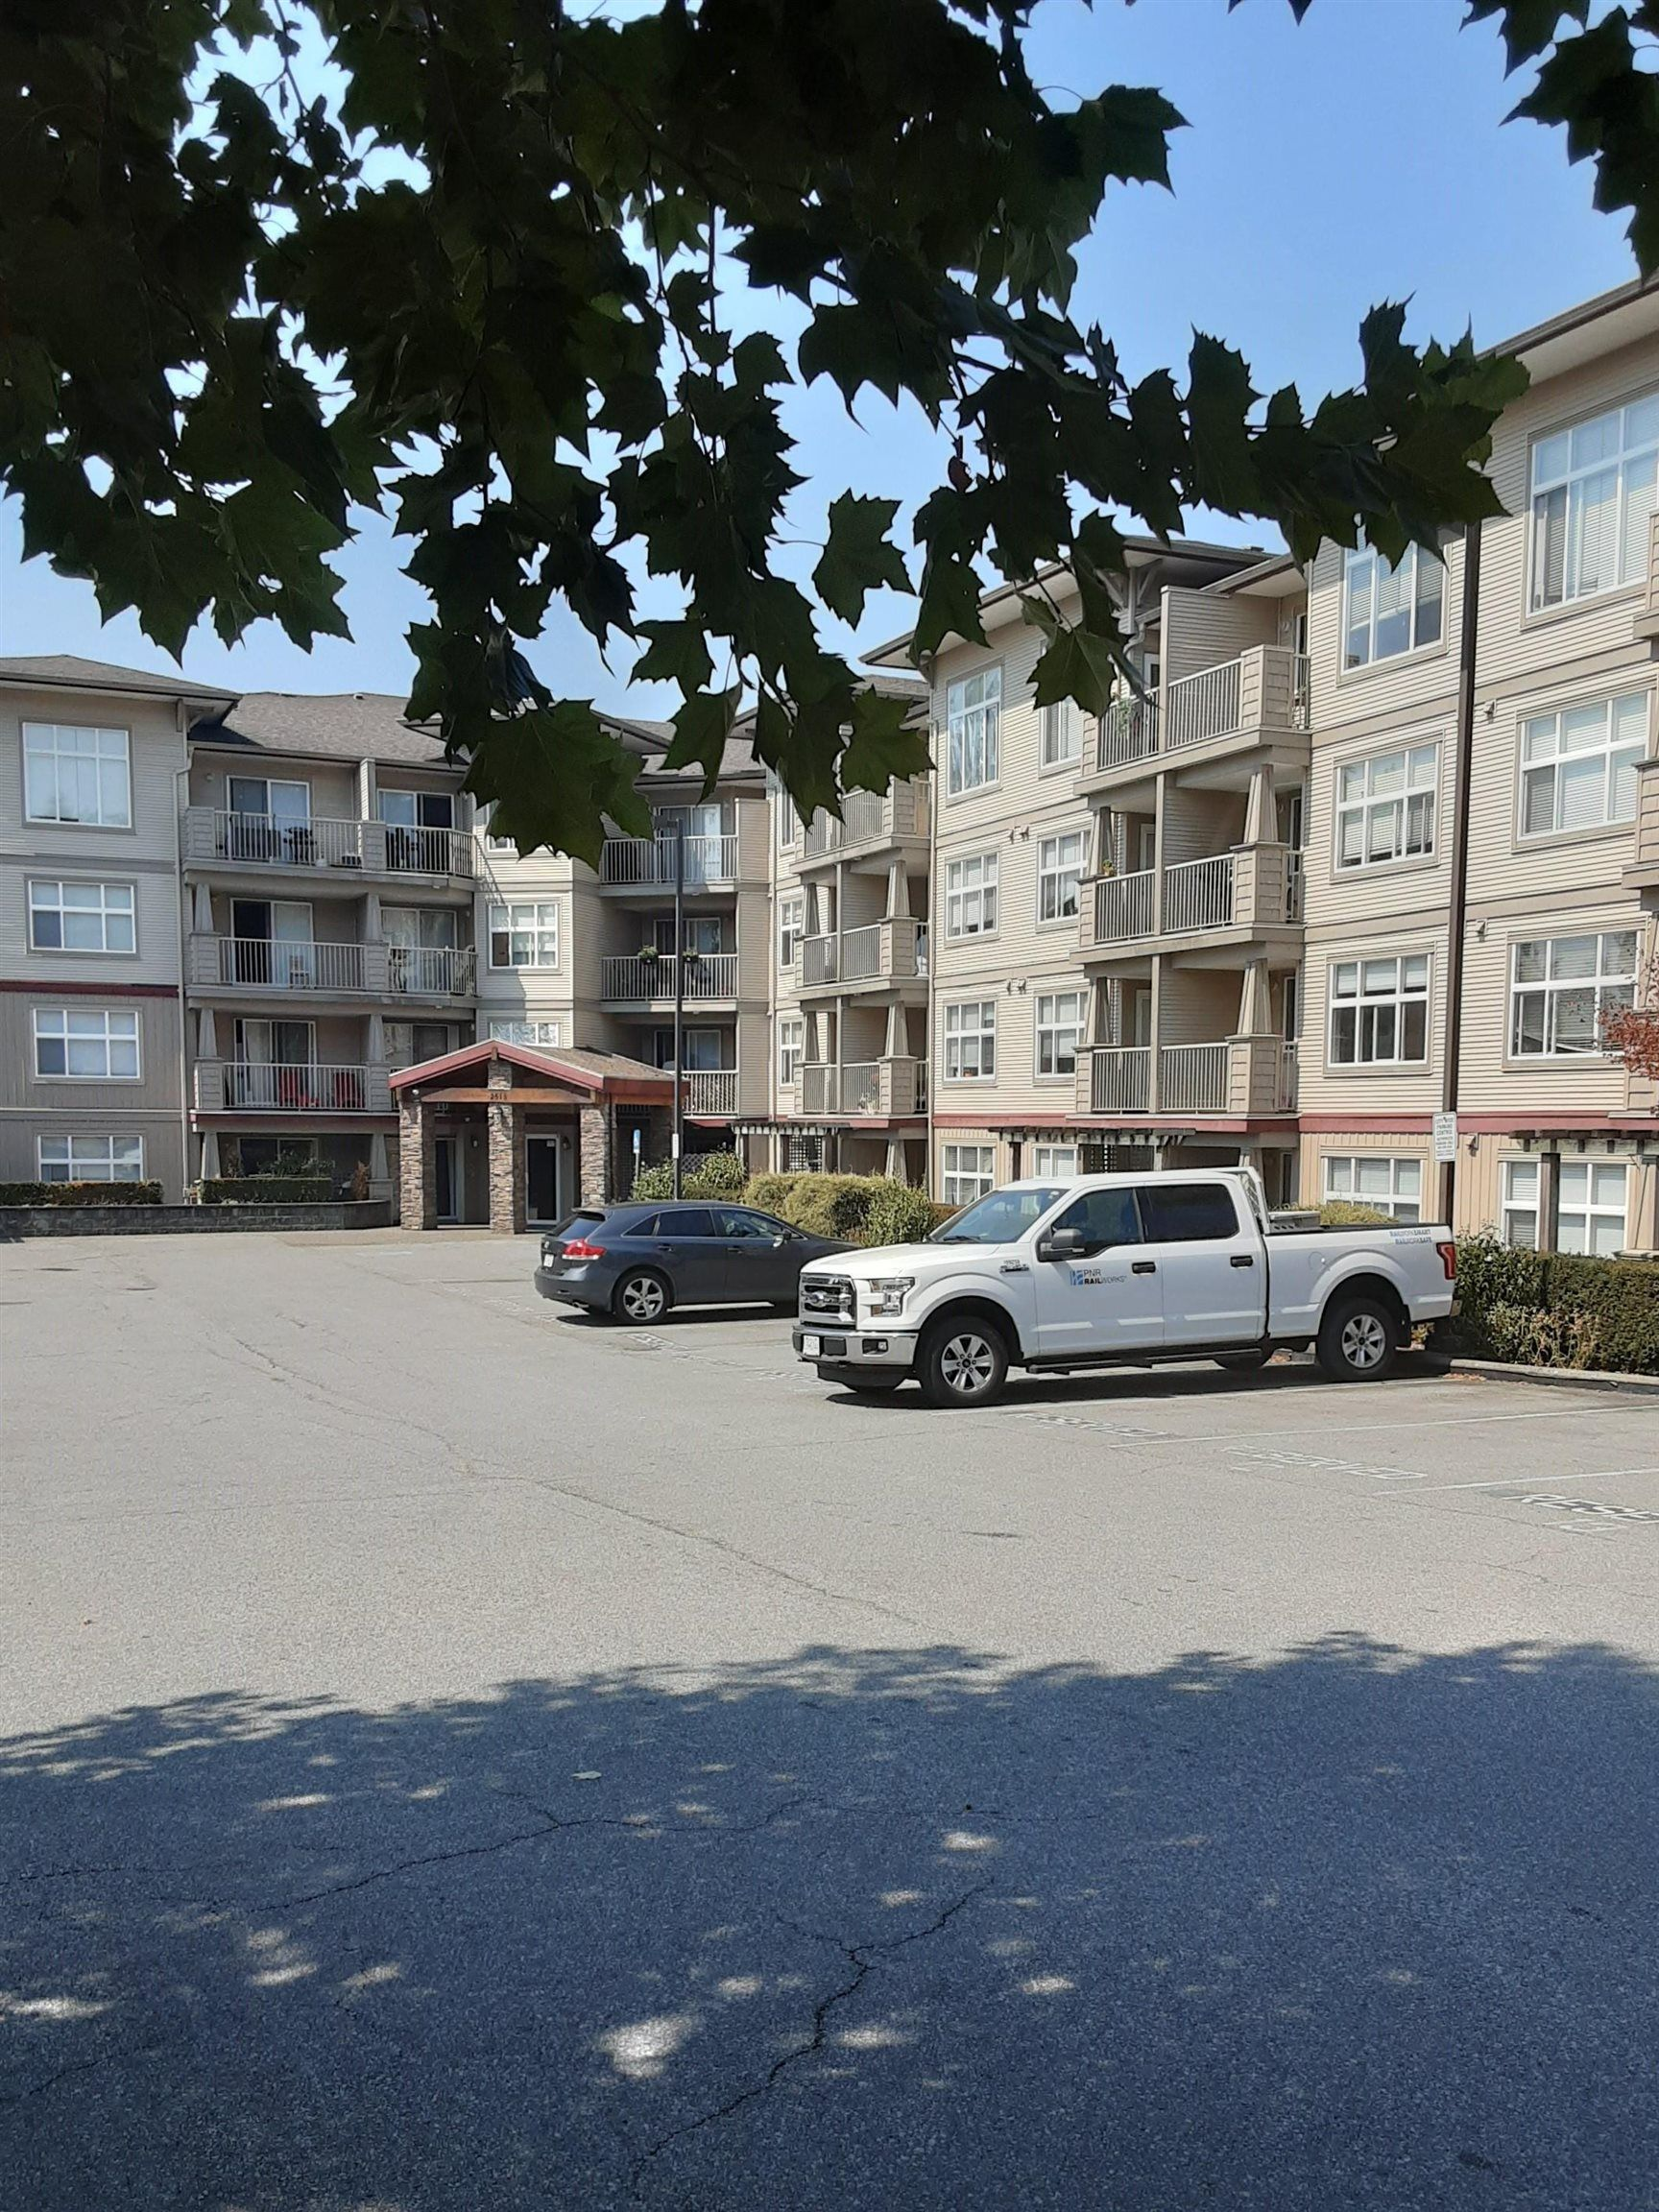 """Main Photo: 316 2515 PARK DRIVE Drive in Abbotsford: Abbotsford East Condo for sale in """"Viva on Park"""" : MLS®# R2609453"""